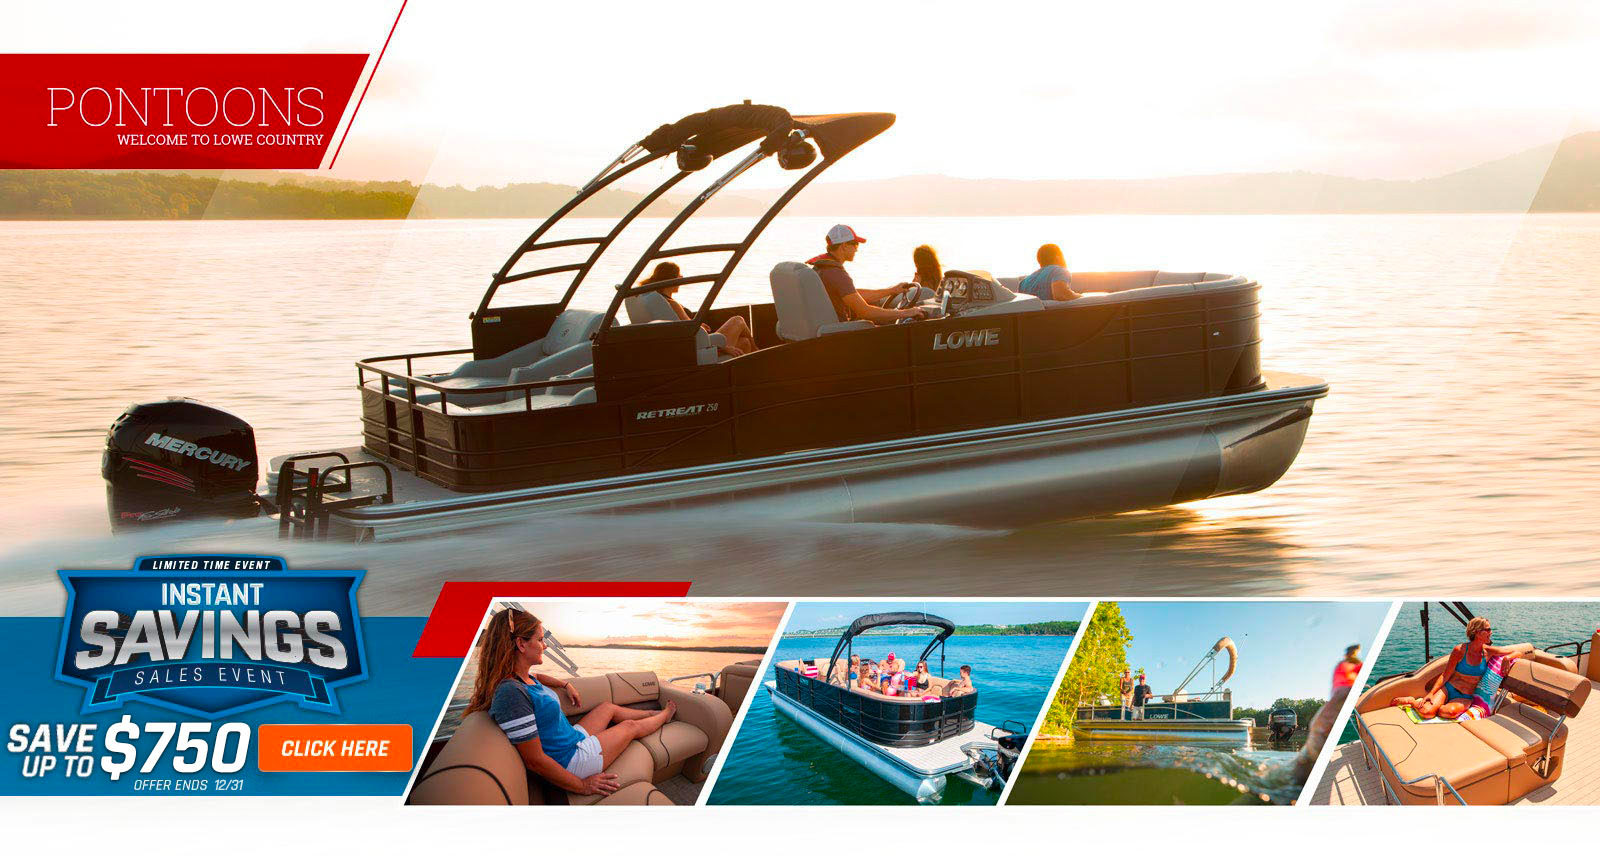 2019 Lowe Boats Instant Savings Offer - Up to $1,250 Off - Expires 6/30d